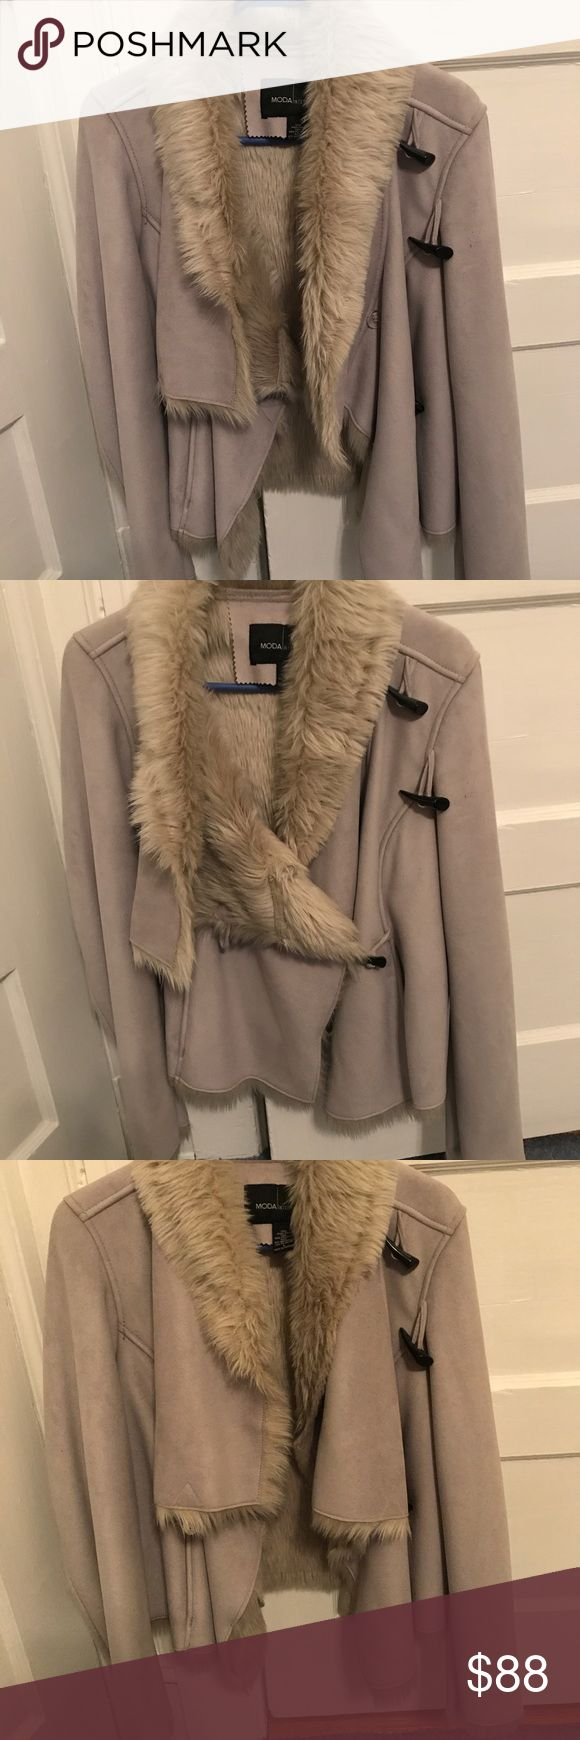 Gorgeous faux fur lined coat Brand new. Never worn. Inside is completely lined with faux fur.  Waist length depending on your height. Toggle closures in front. Drape detailed collar.  The color is a beige cream grey. Moda International Jackets & Coats